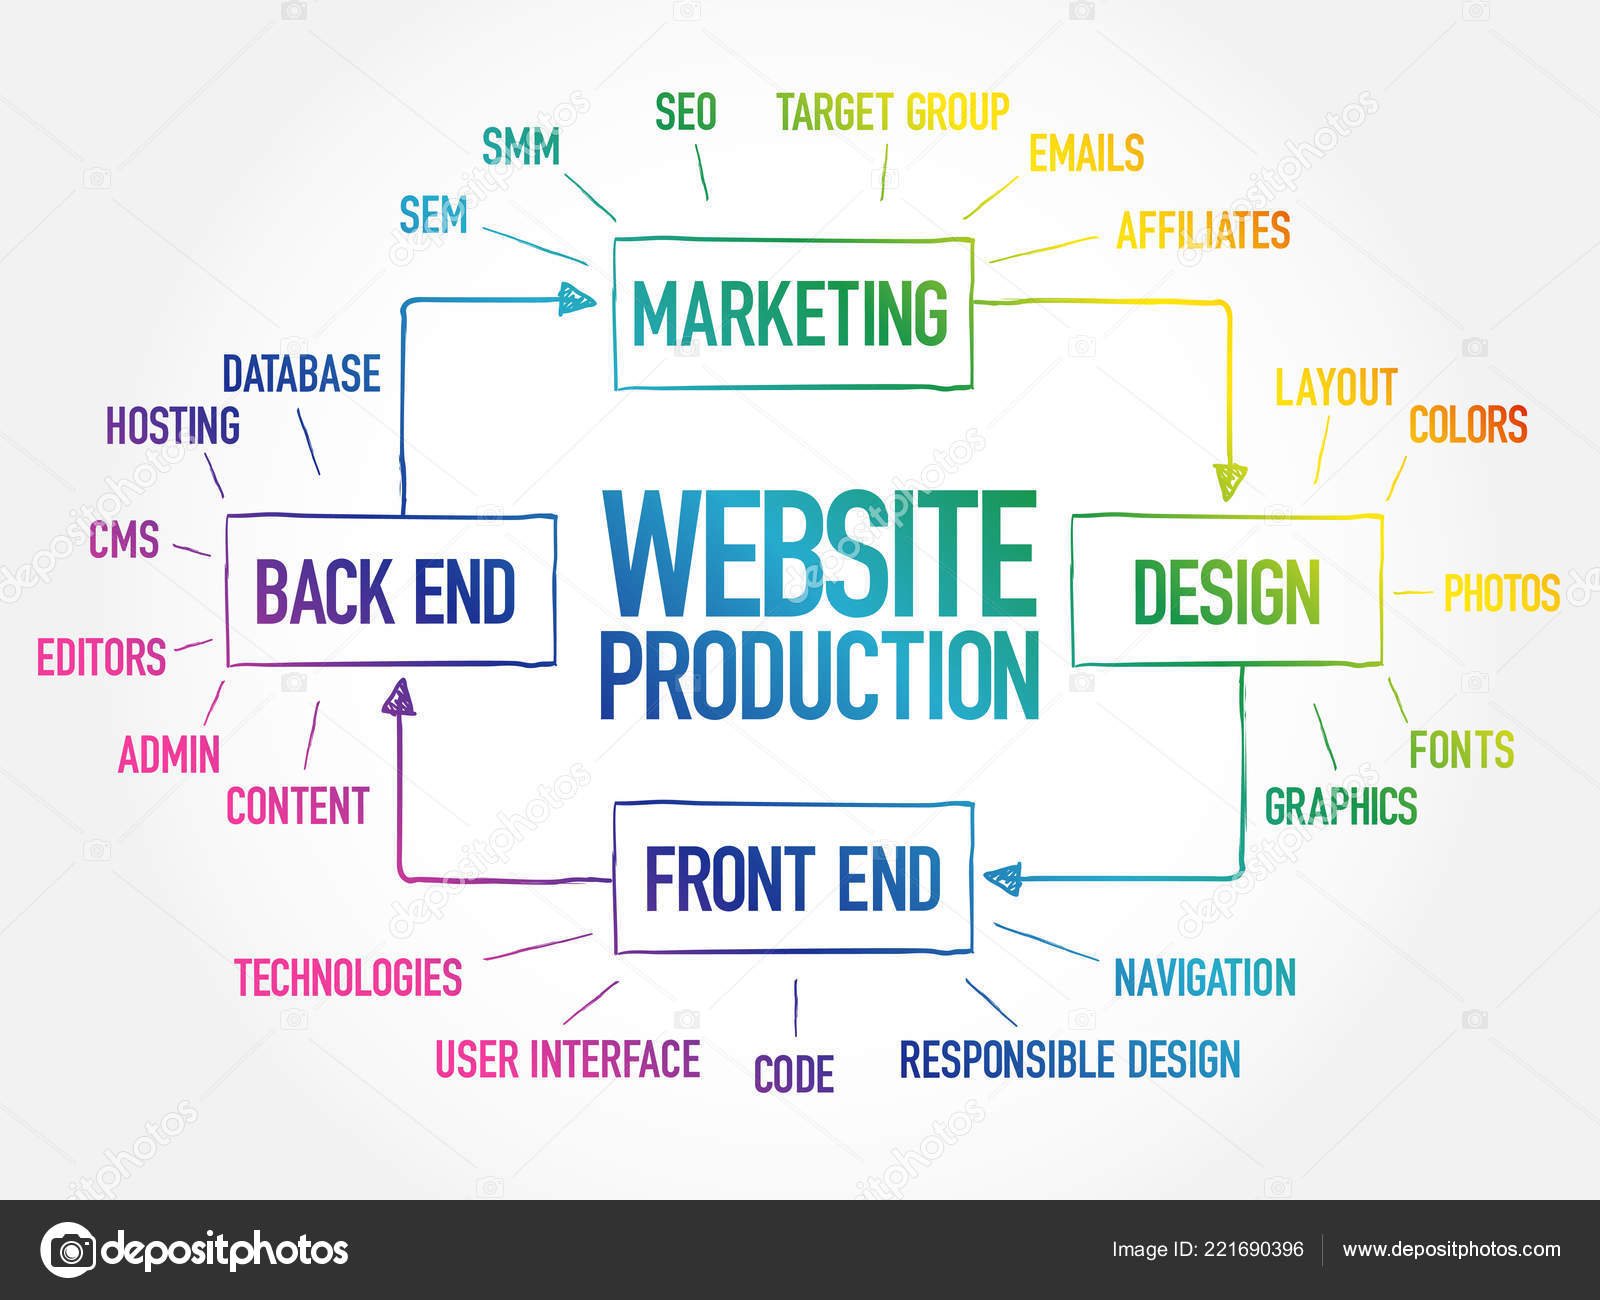 hight resolution of diagram of website production process elements for presentations and reports business concept stock illustration